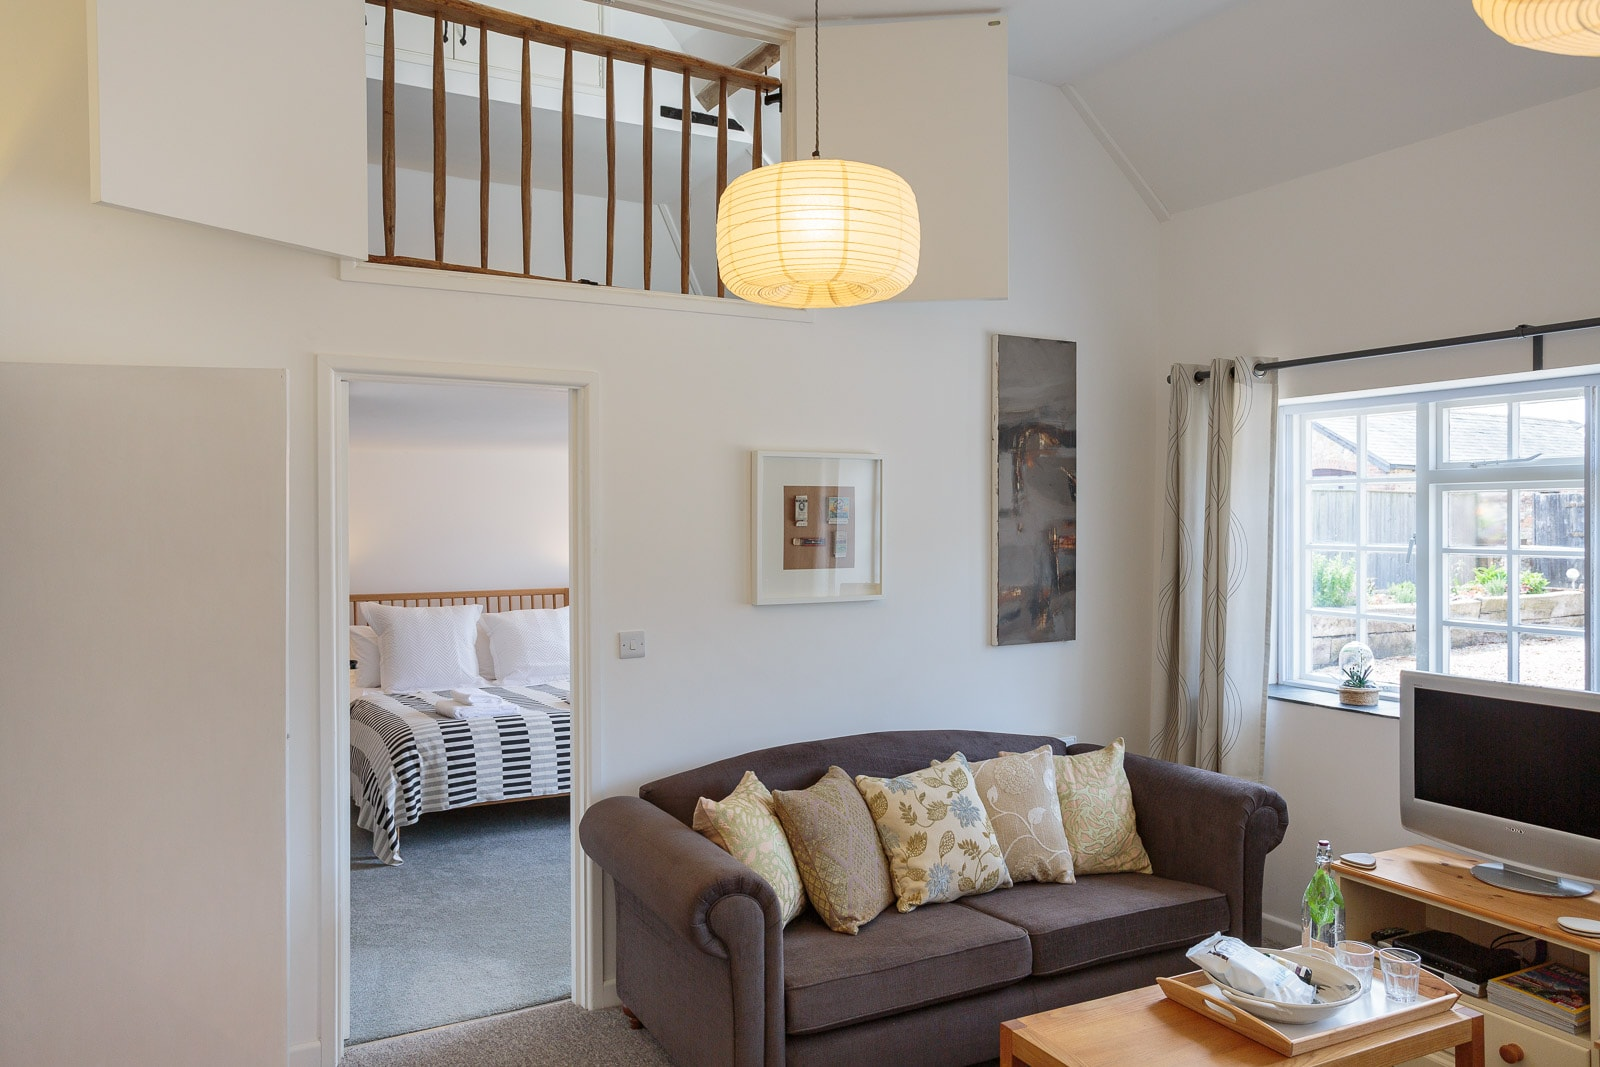 Compact bed and breakfast accommodation looking from lounge area into ground and mezzanine floor bedrooms